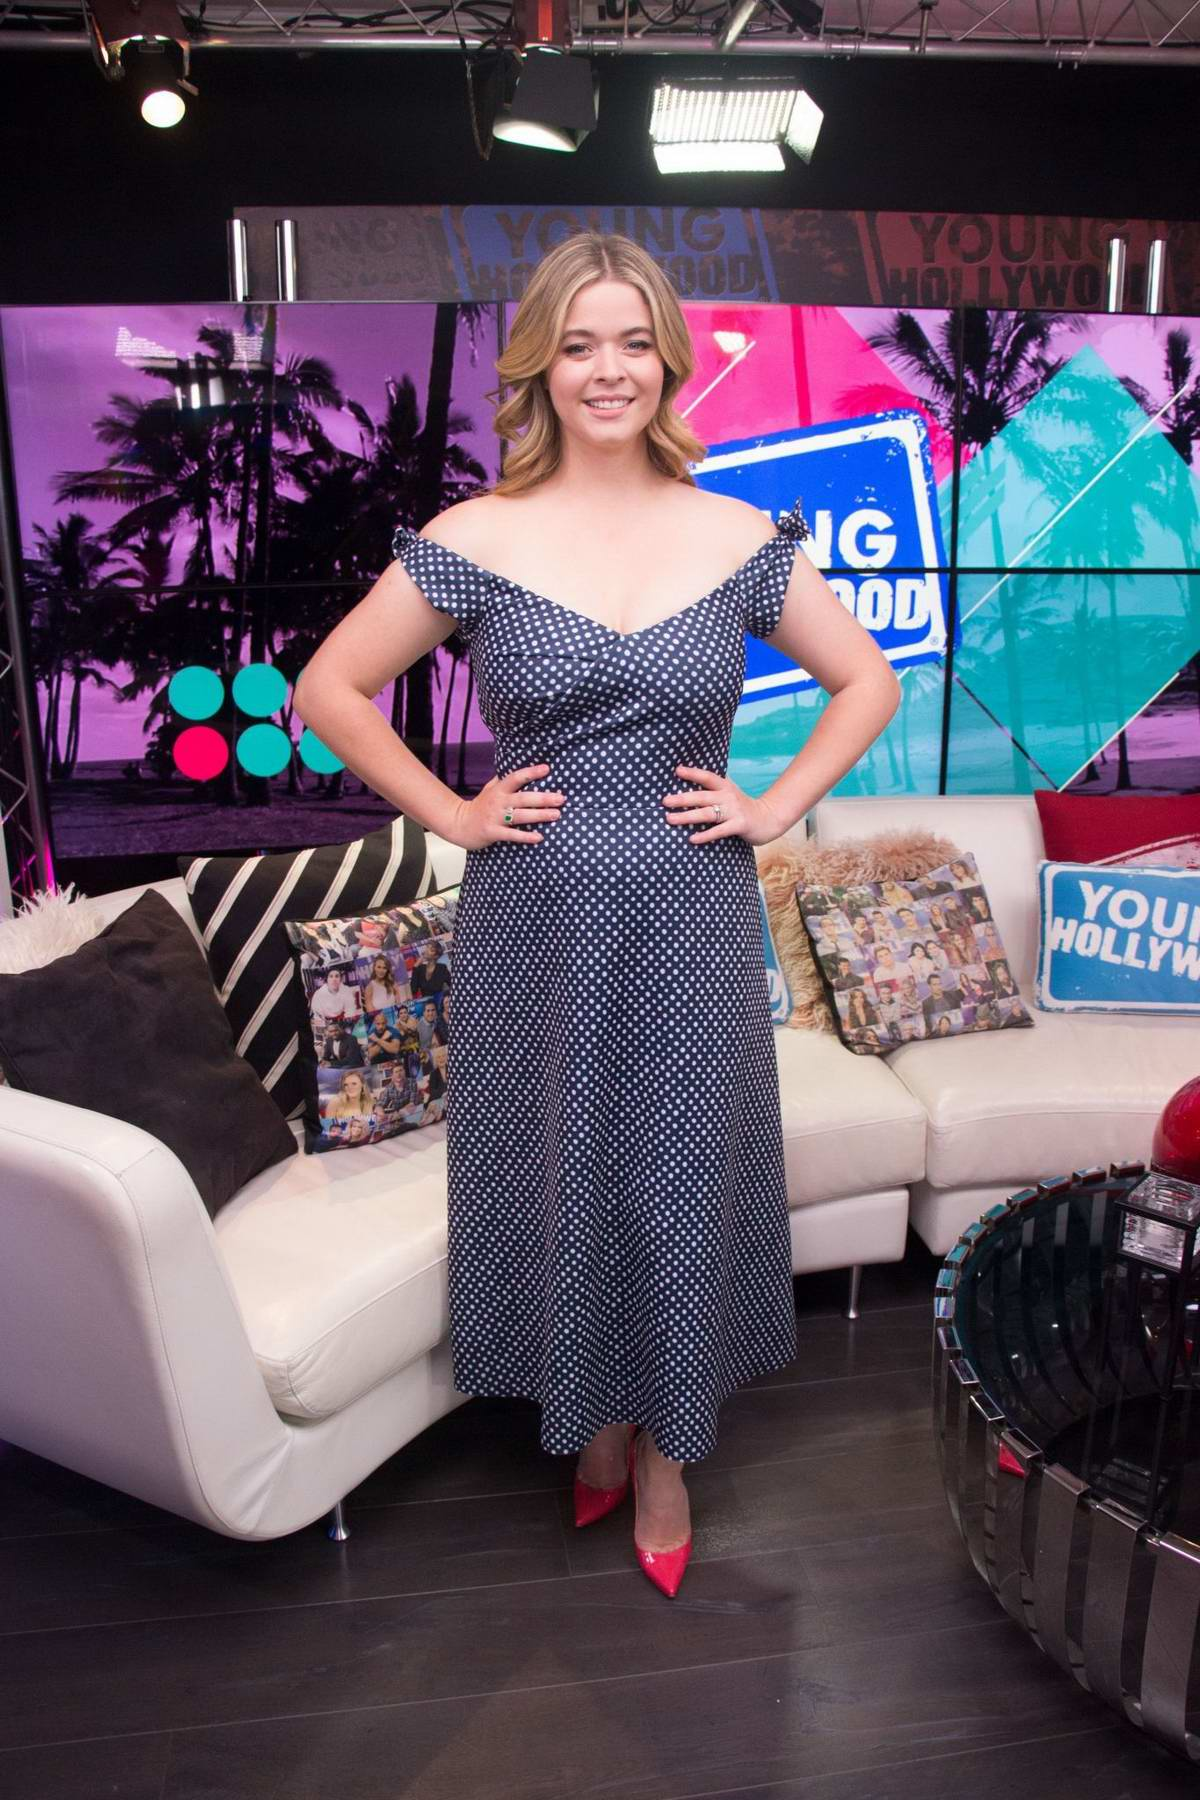 Sasha Pieterse promotes her book 'Sasha In Good Taste' at Young Hollywood Studio in Los Angeles